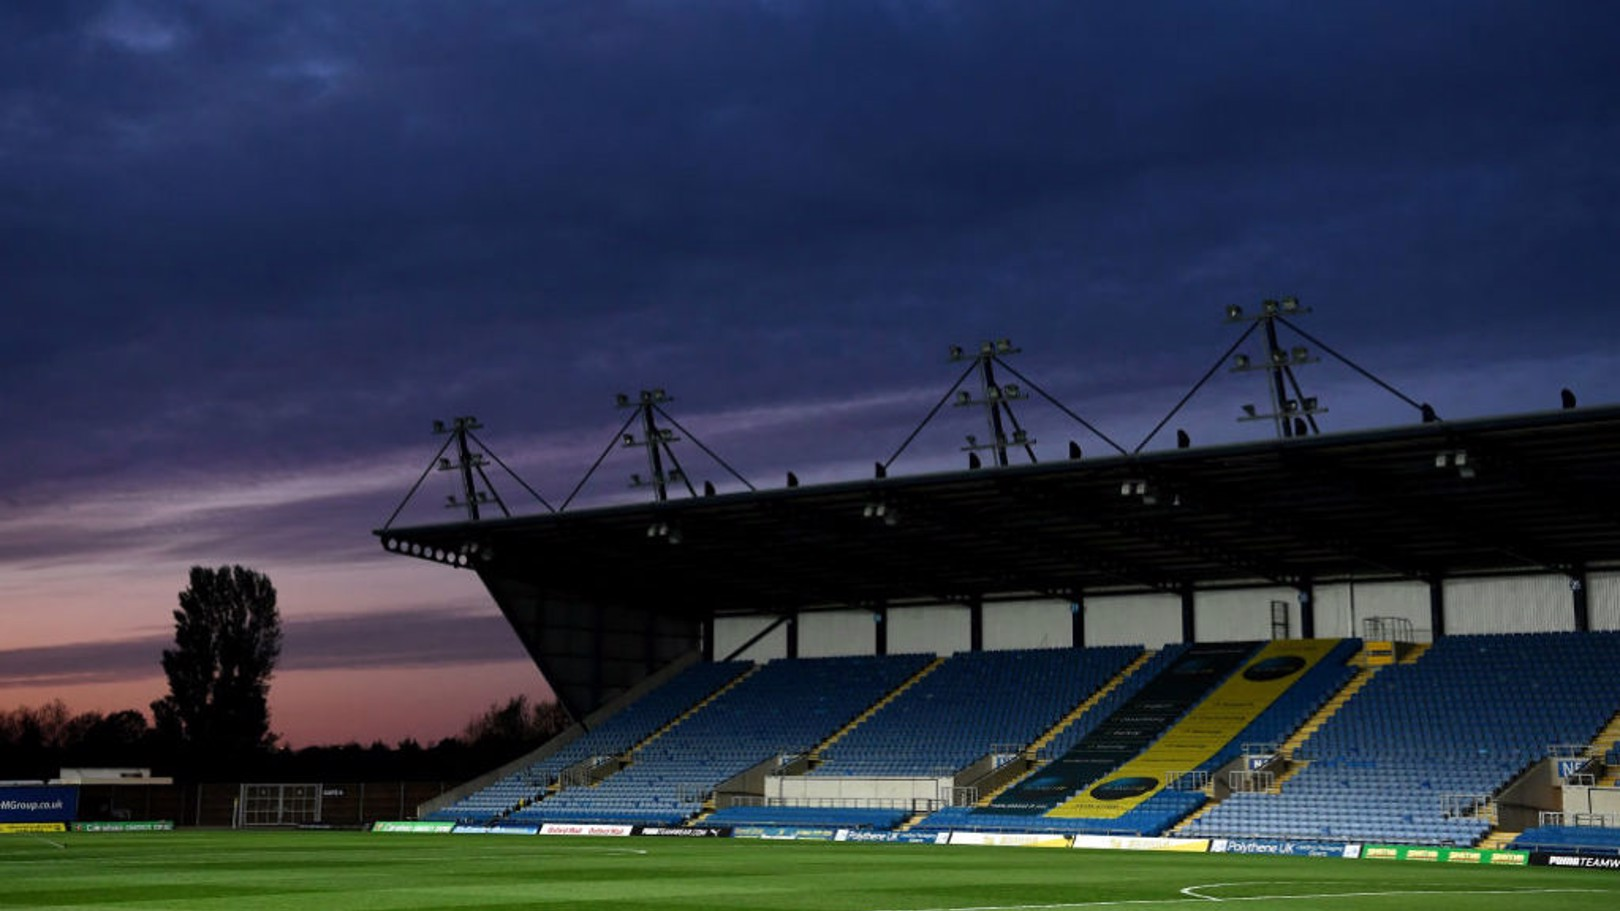 SOLD OUT: Our game at the Kassam Stadium is sold out